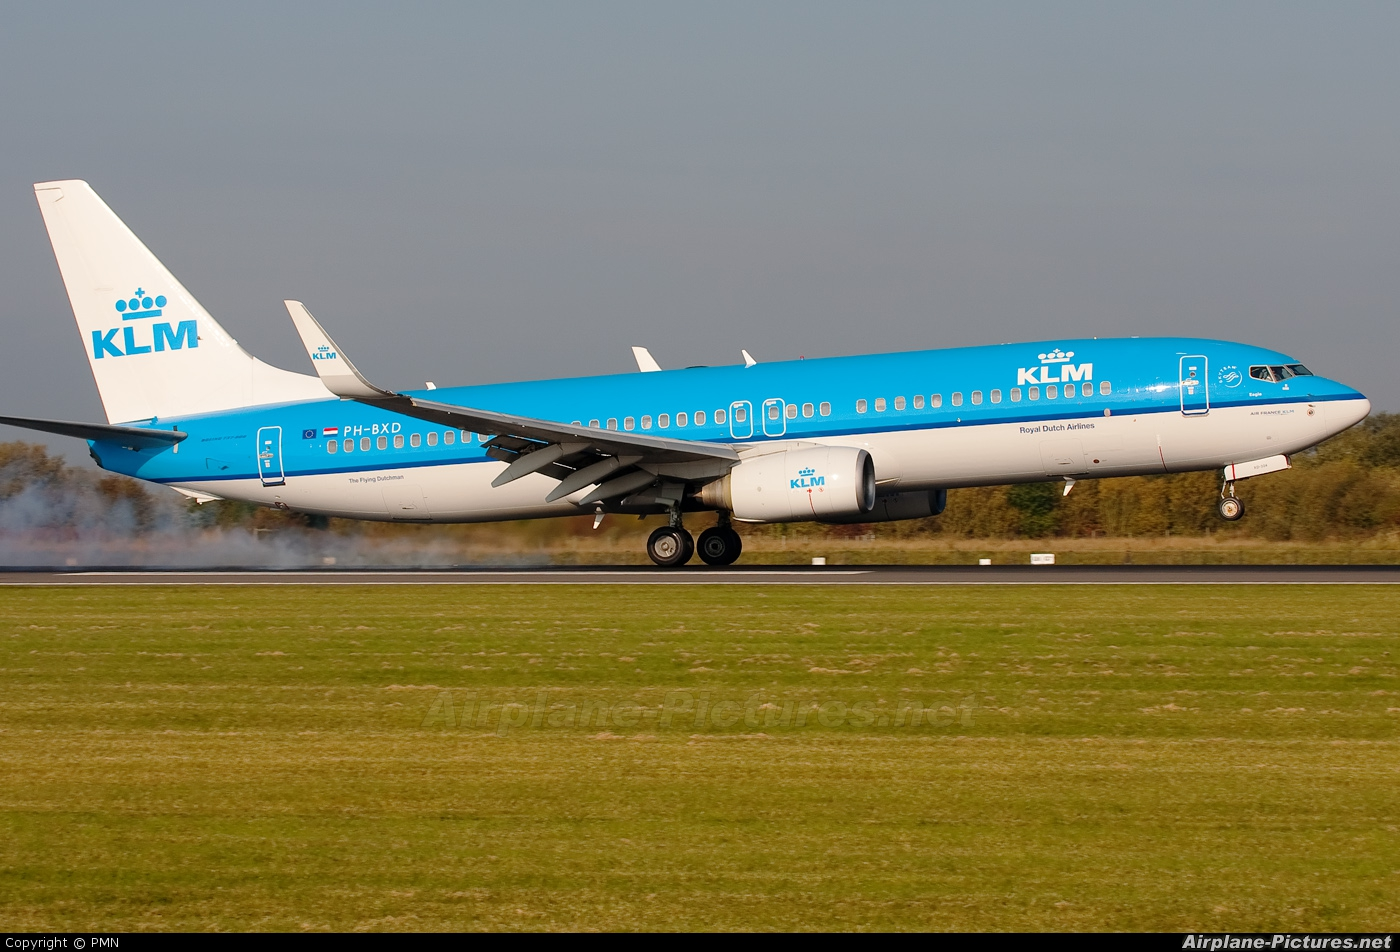 KLM PH-BXD aircraft at Manchester